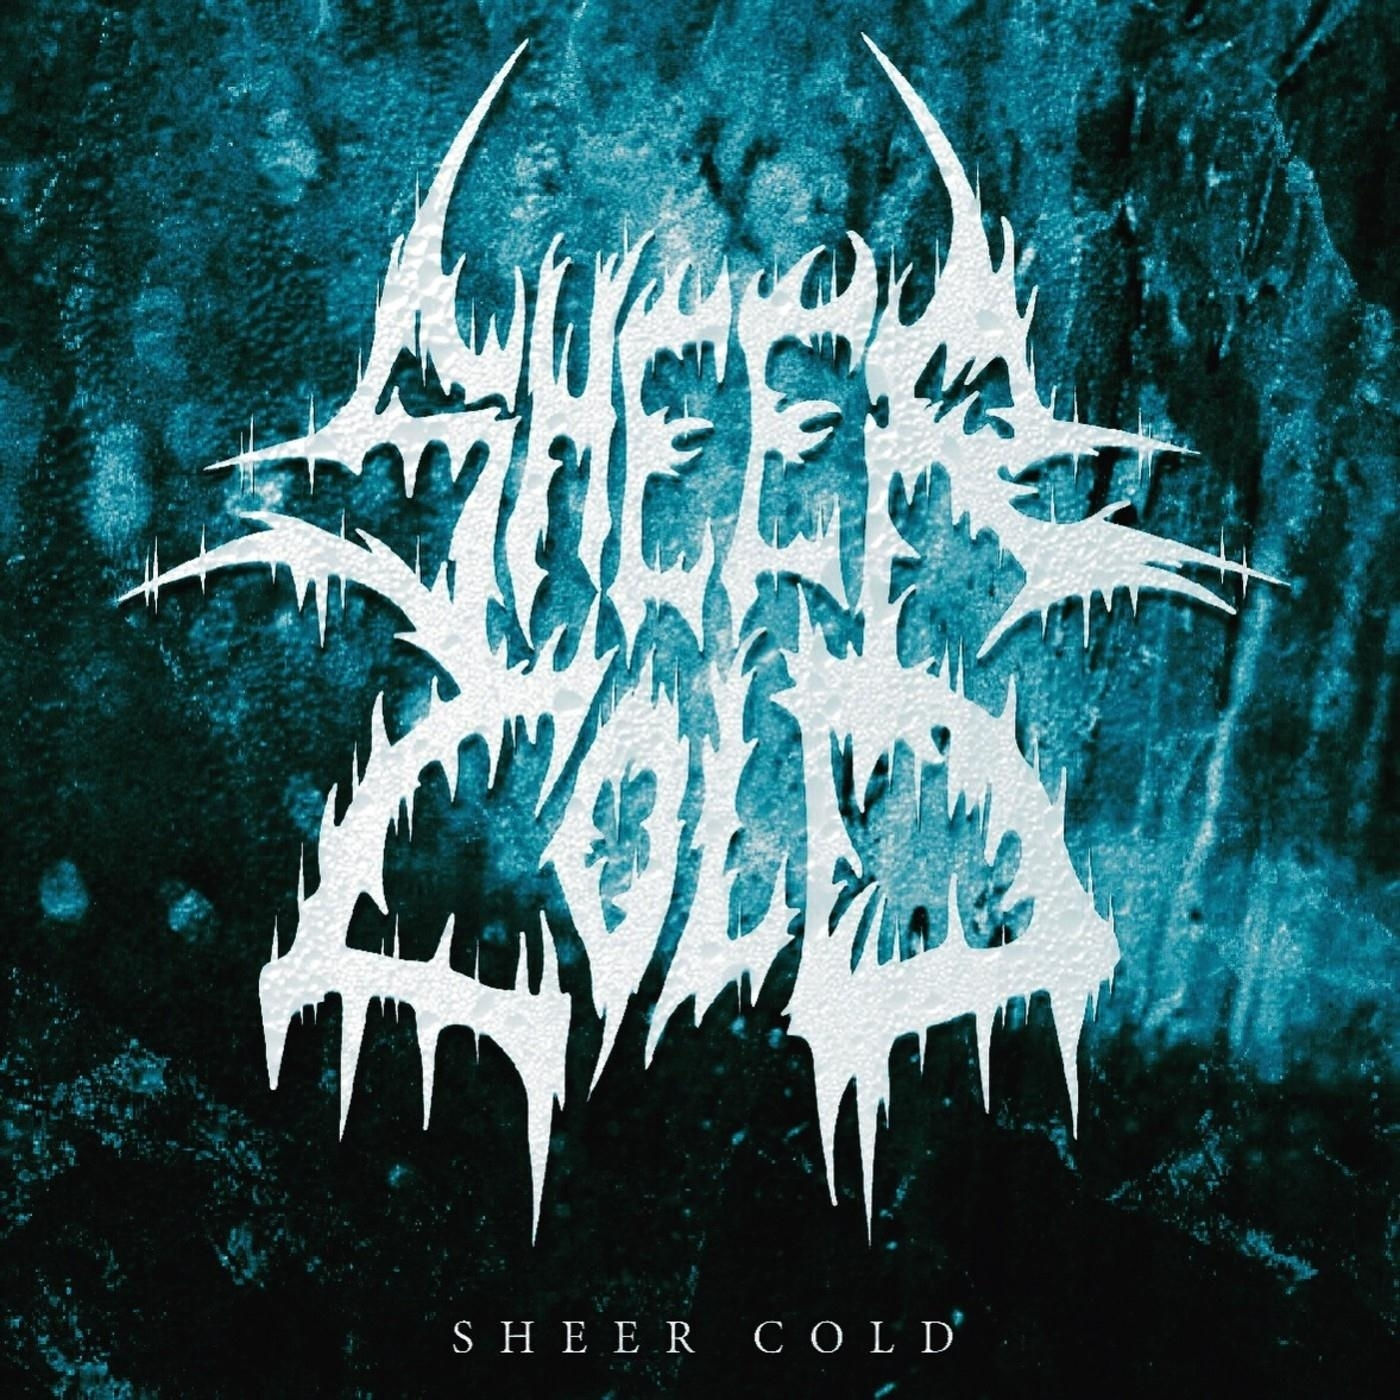 Sheer Cold - Cryogenic Revival [single] (2020)